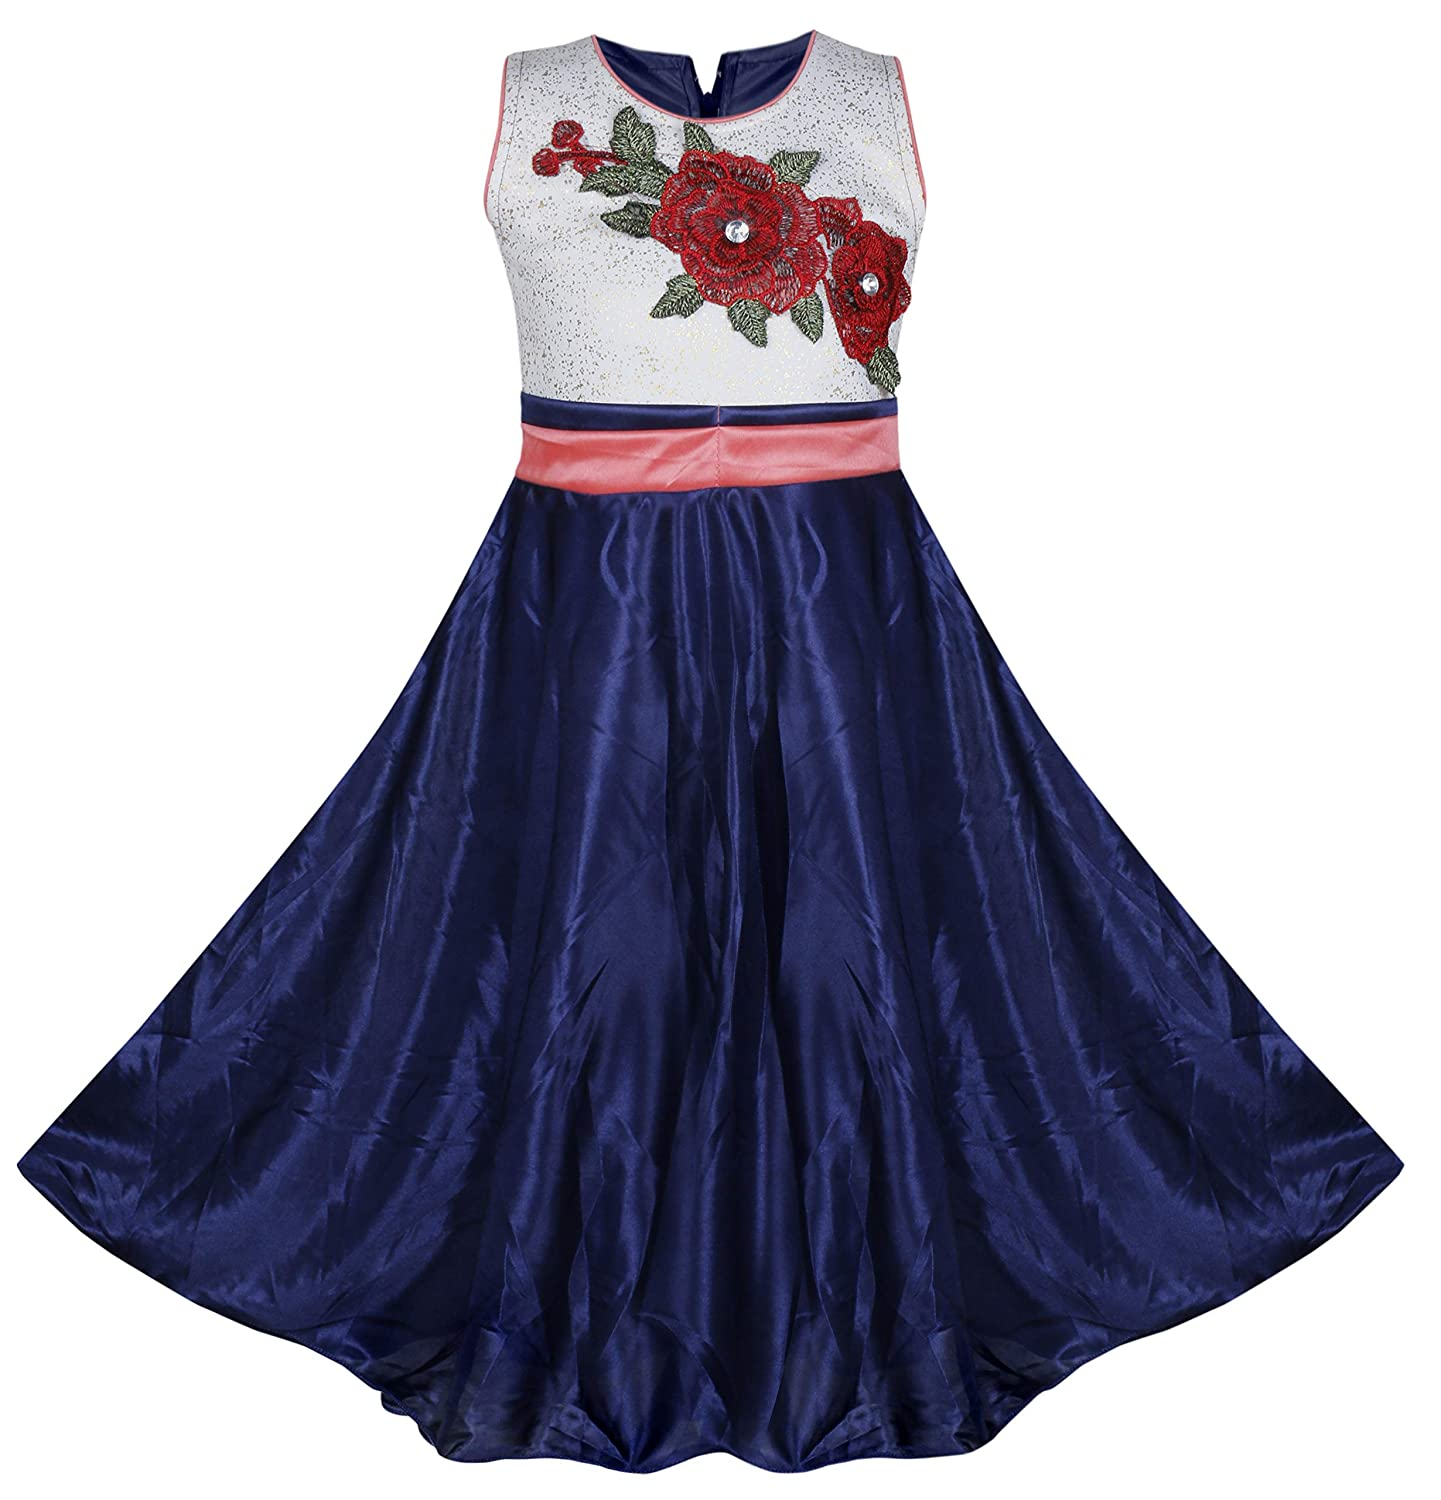 0b5942f2f13b BENKILS Cute Fashion Baby Girl s Skuba Lycra Party Wear Frock Dress ...